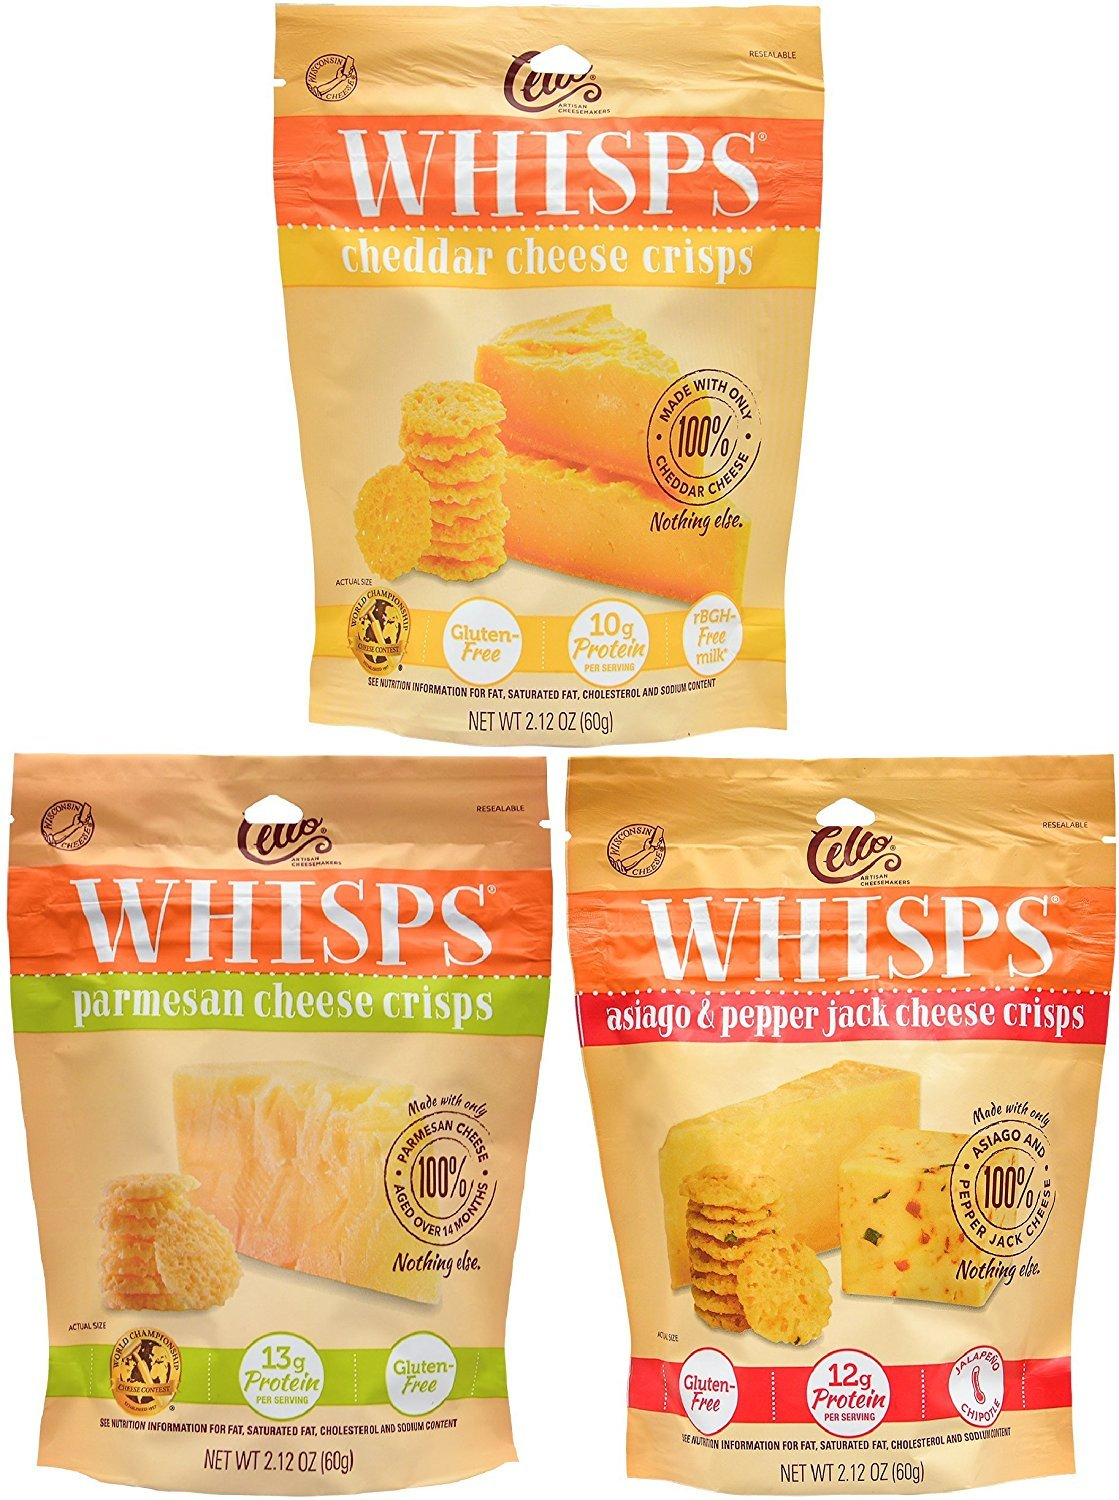 Whisps Cheese Crisps 3 Pack Assortment (2.12oz) Cheddar, Parmesan & Asiago/Pepperjack